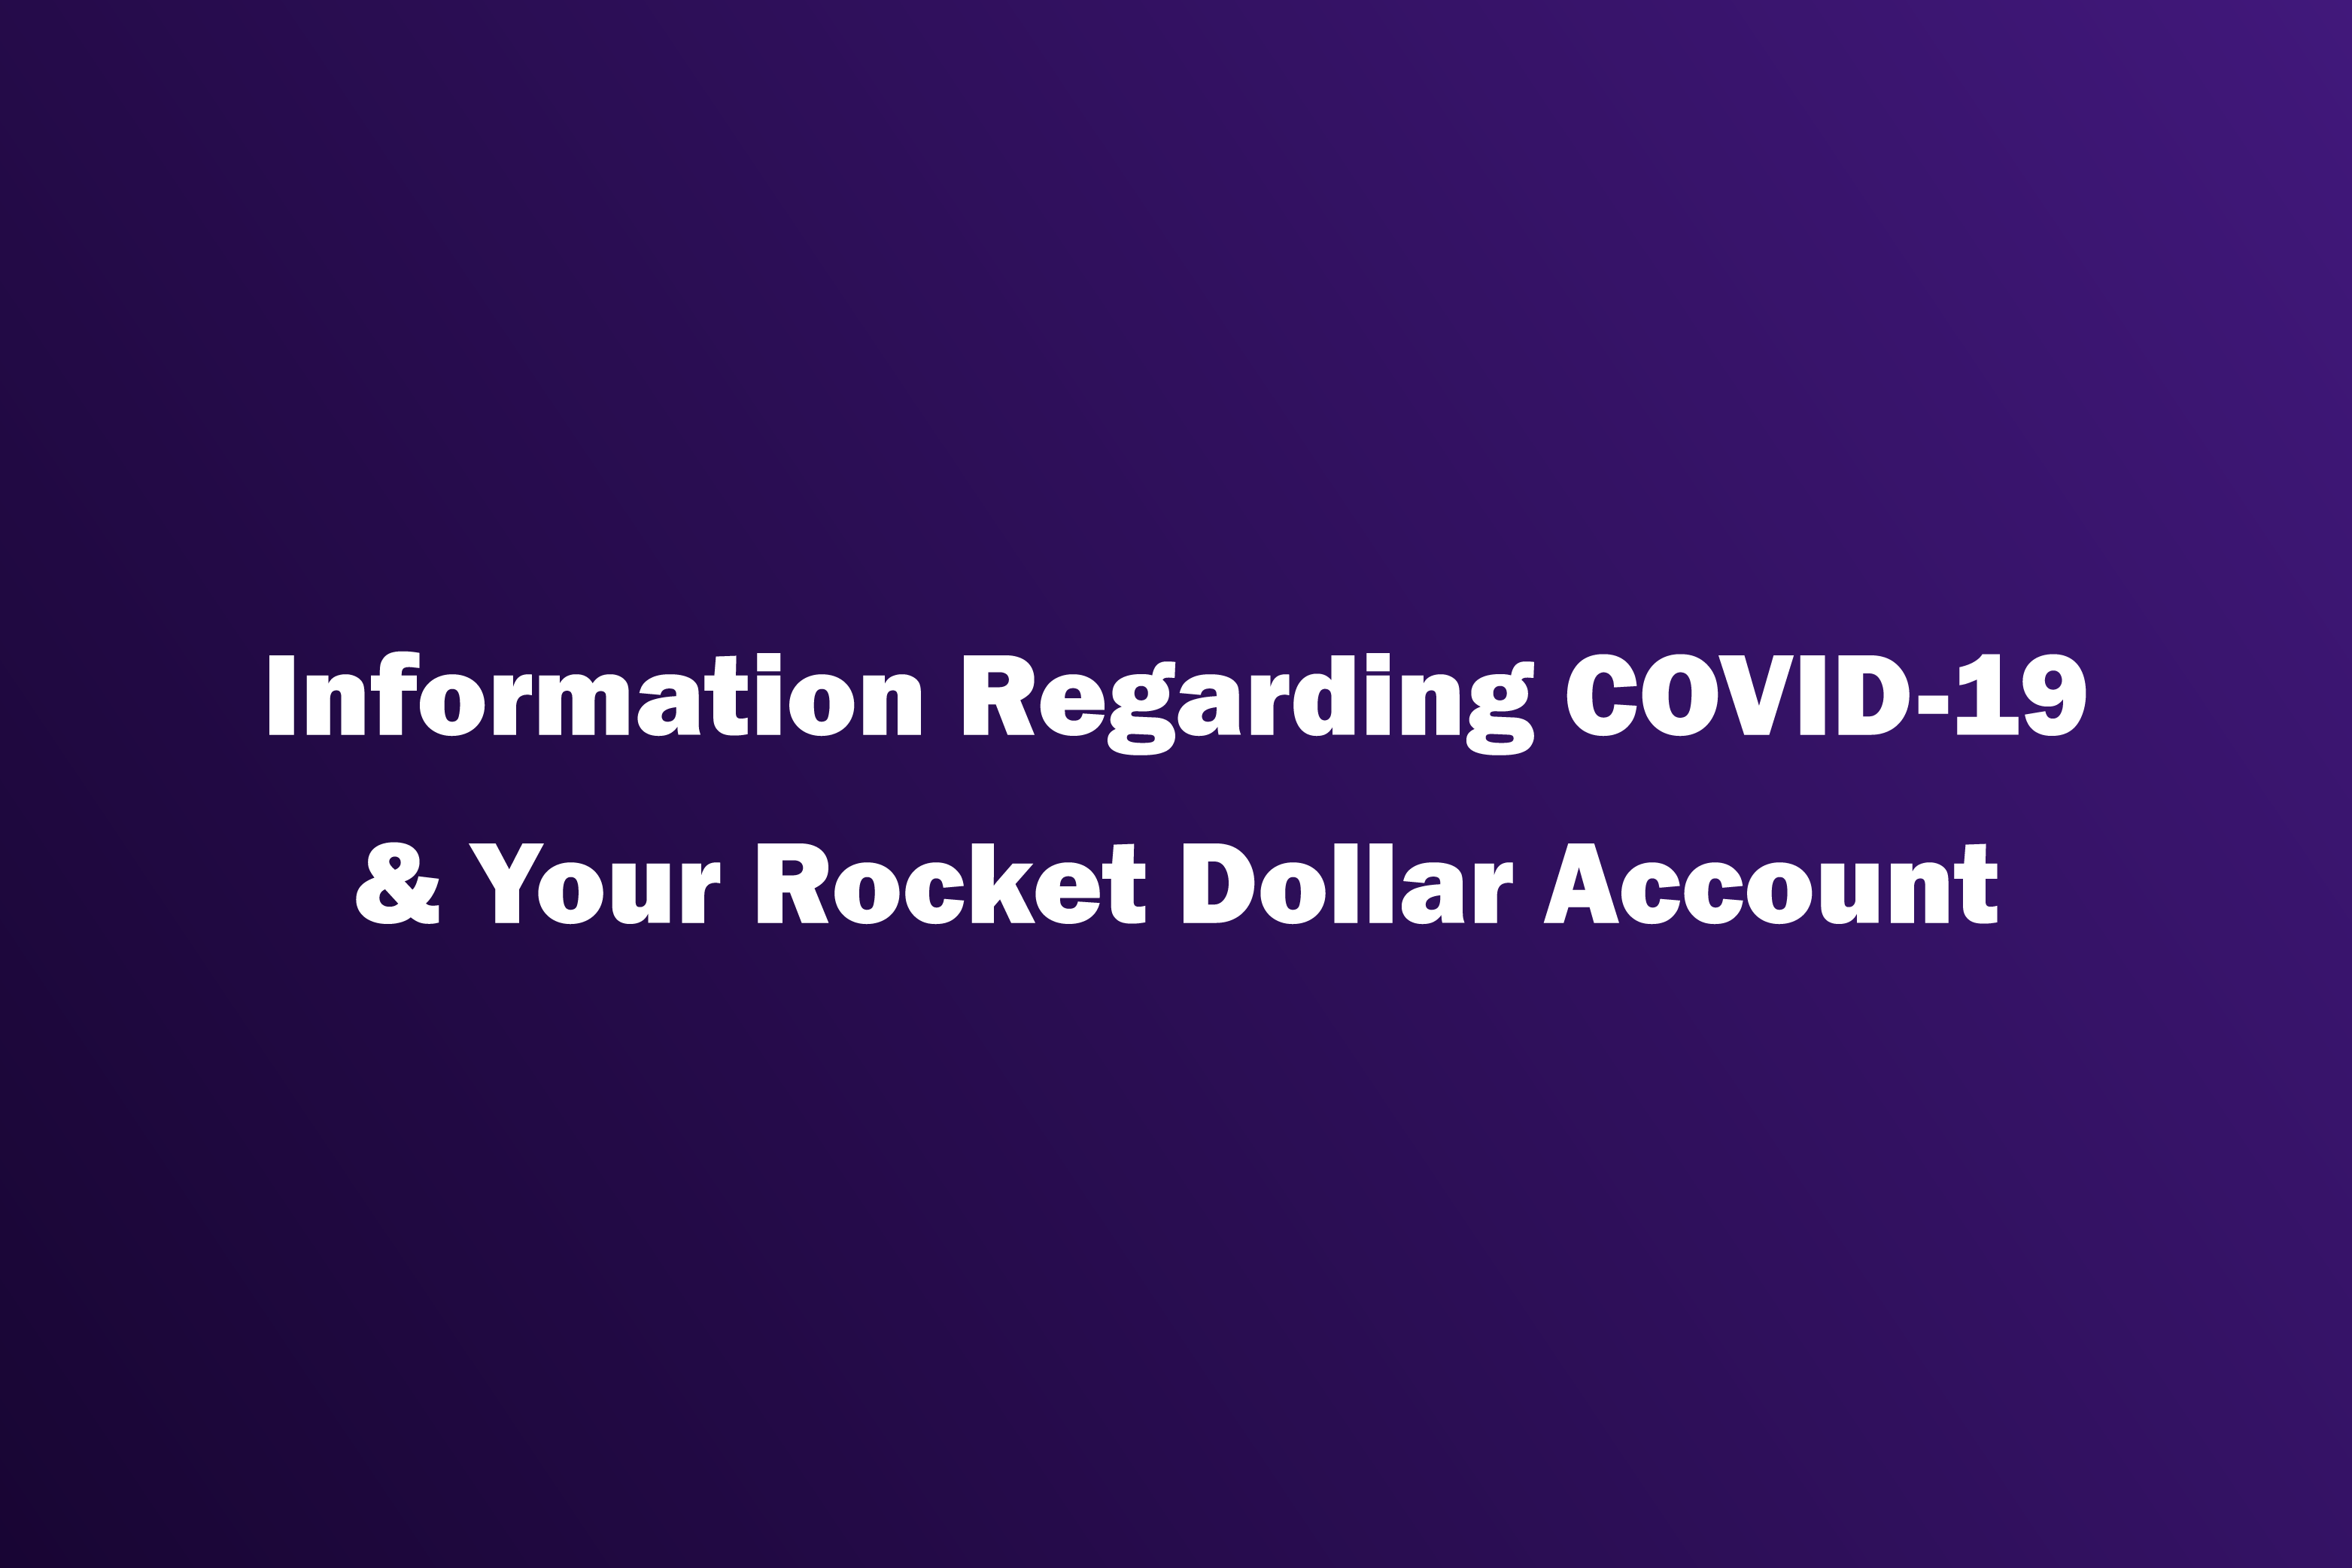 Information Regarding Covid-19 and Your Rocket Dollar Account